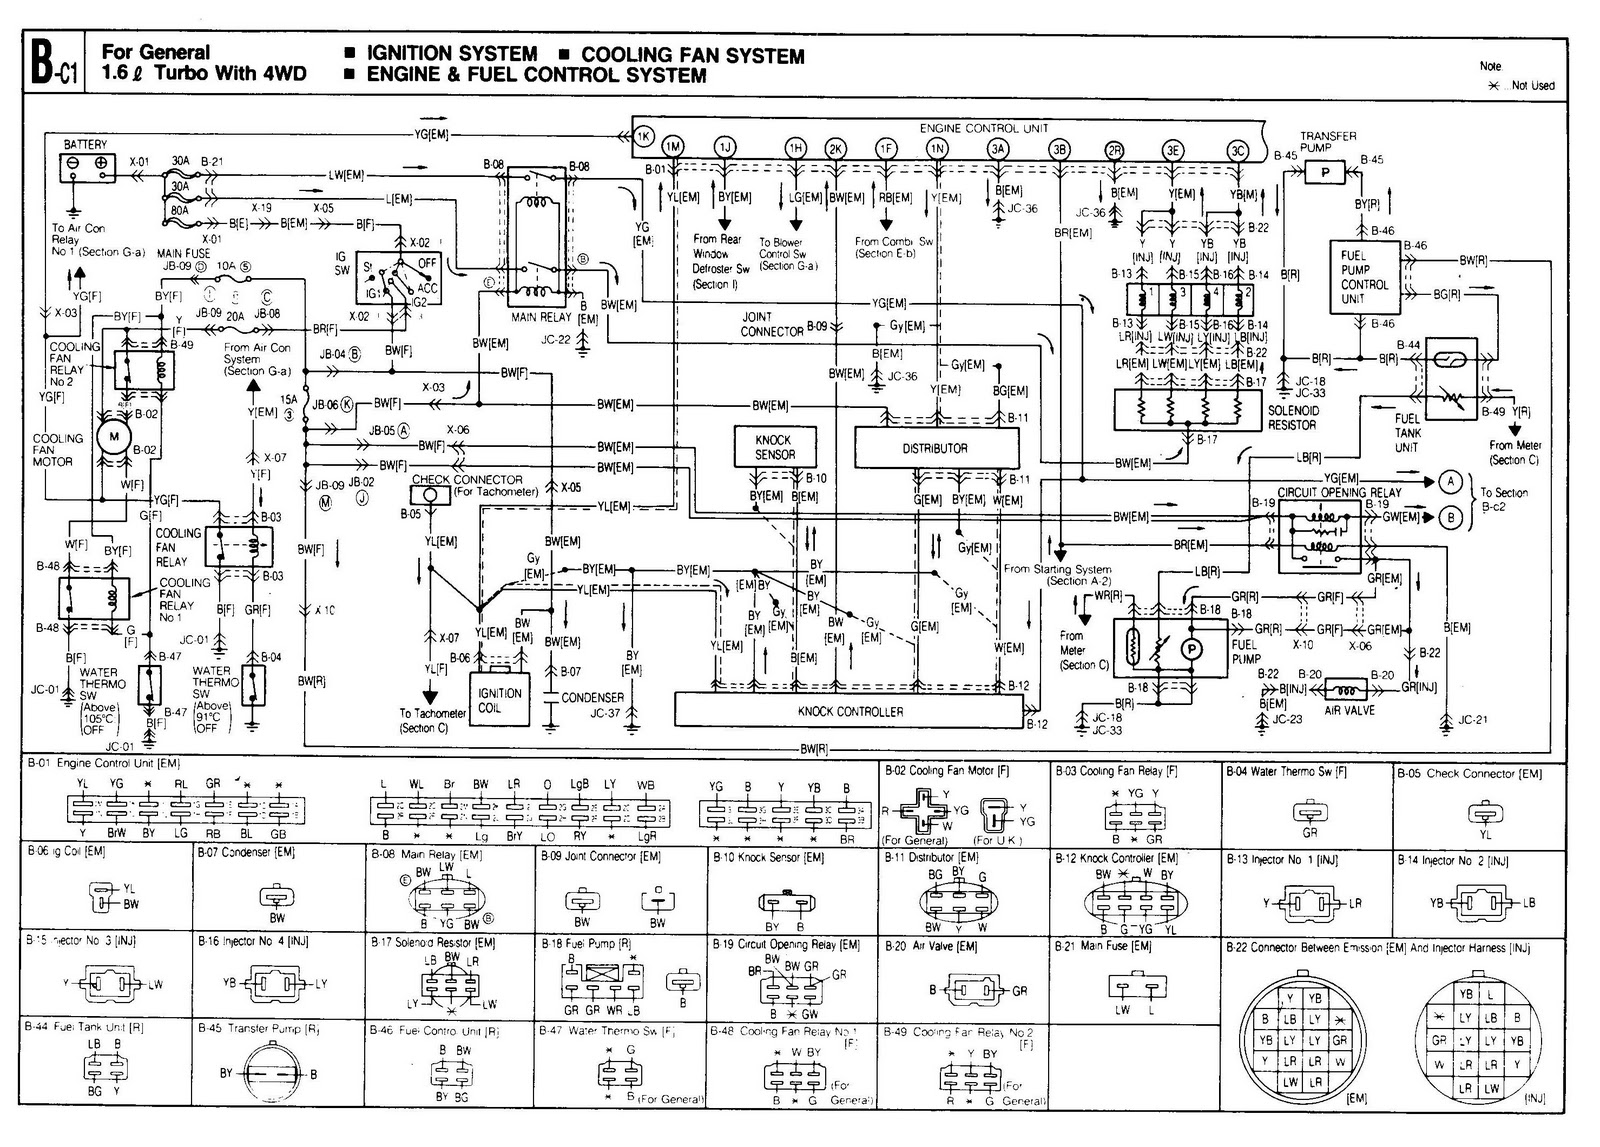 Mazda Understanding Wiring Diagram on volvo window motor wiring diagram